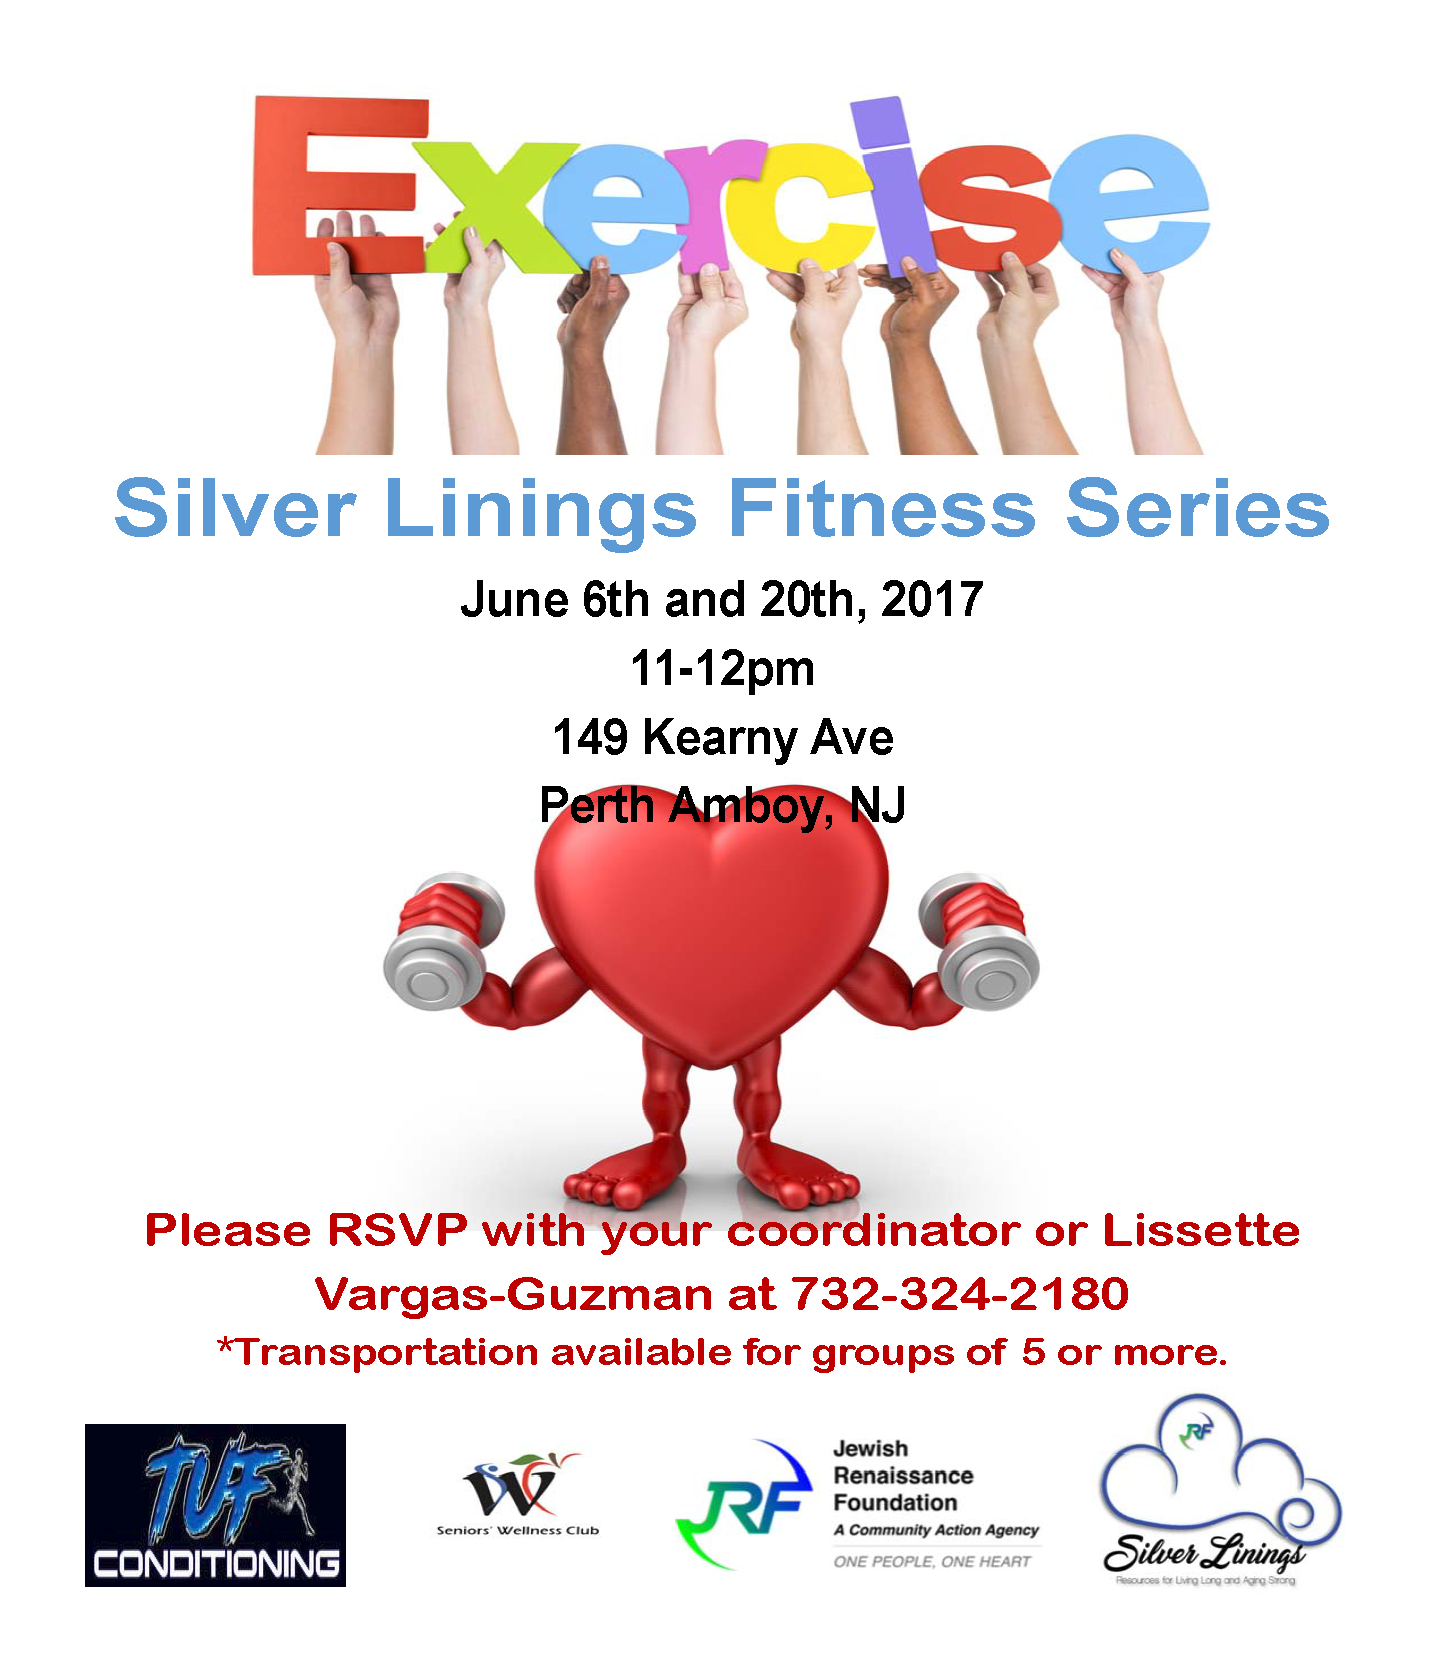 Silver Linings Fitness Series